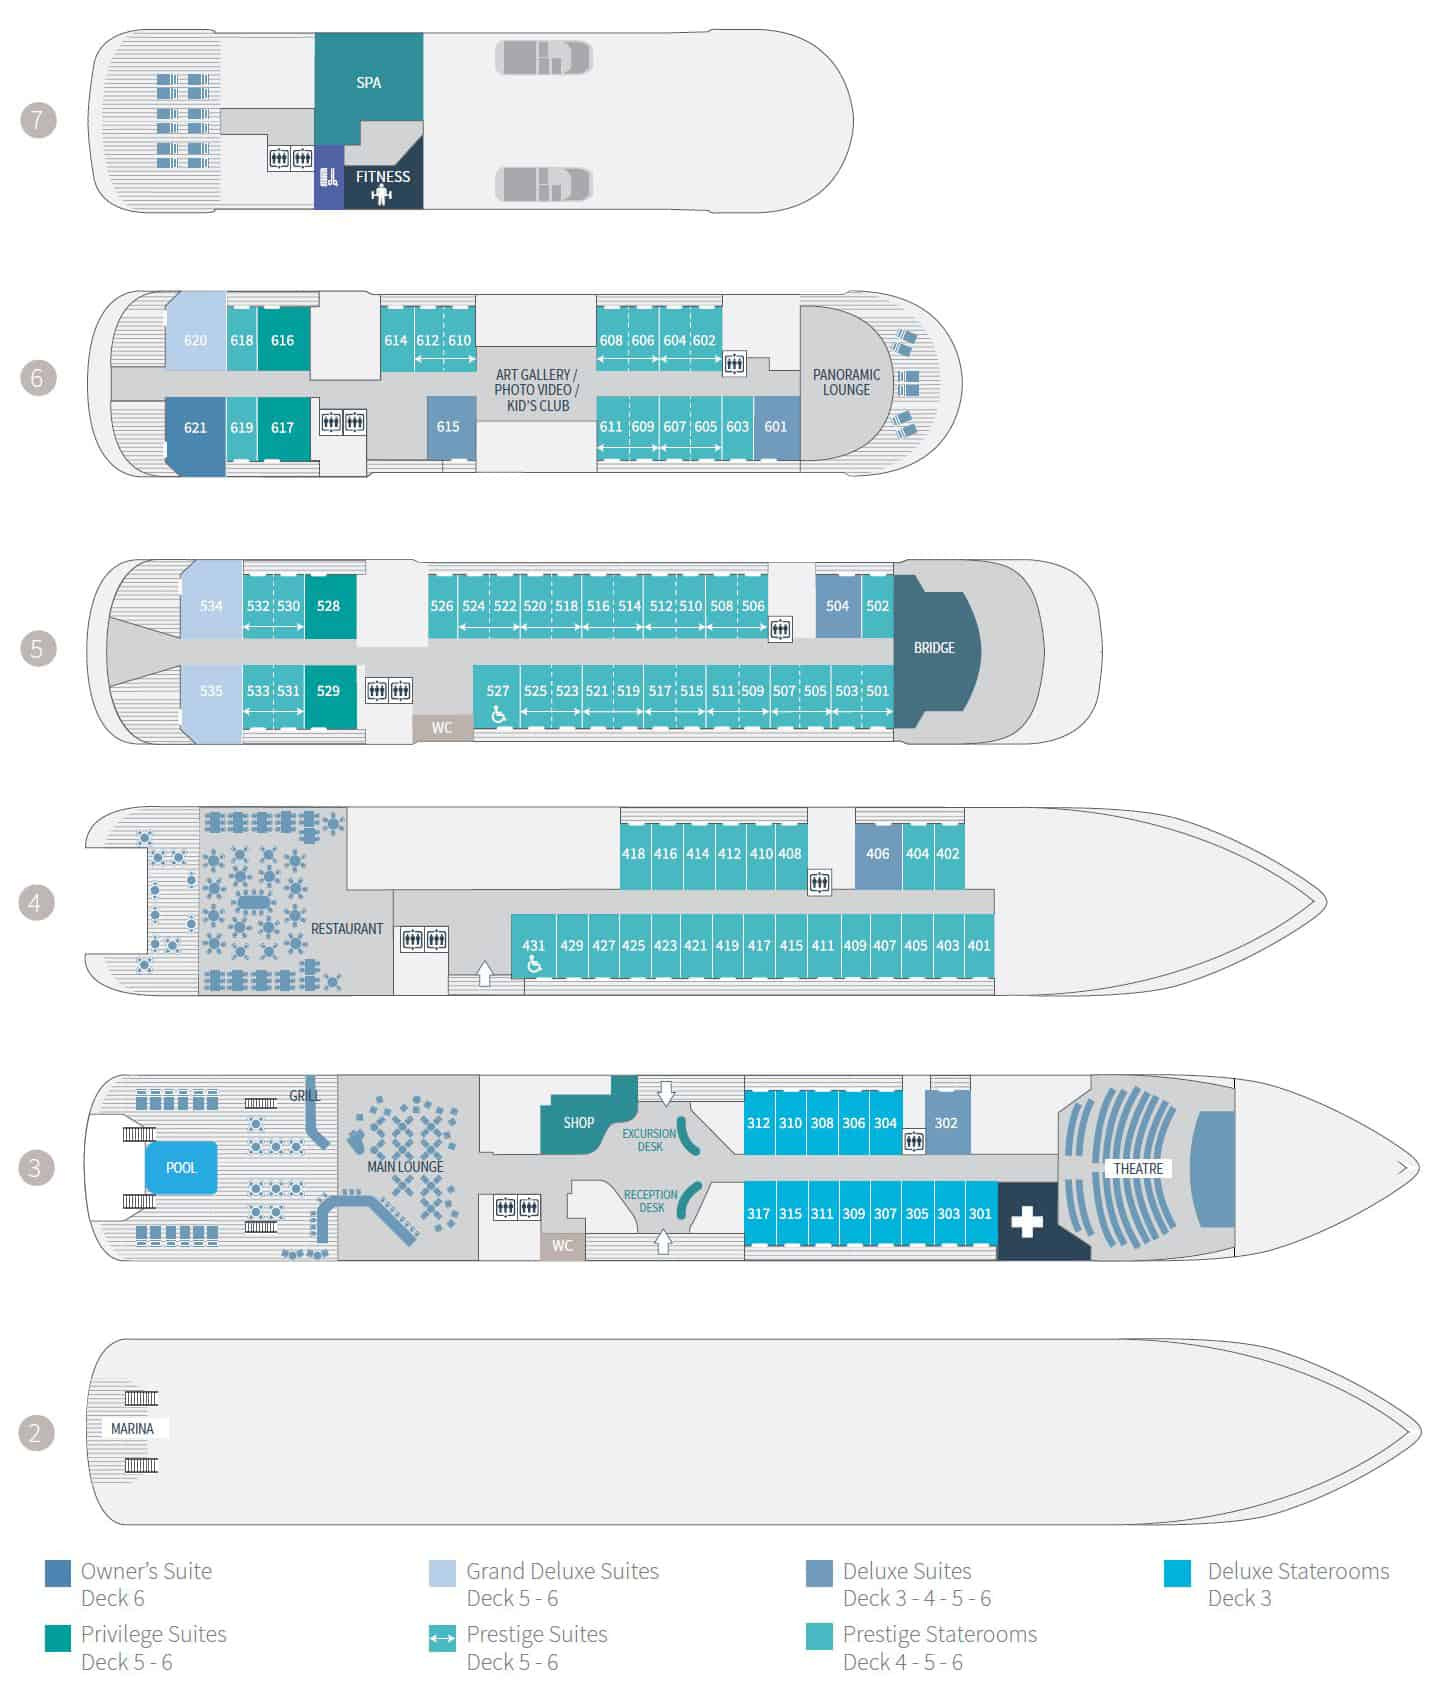 Deck plan of 184-guest Le Champlain French luxury expedition ship, showing 4 passenger decks with 88 staterooms & 4 suites.